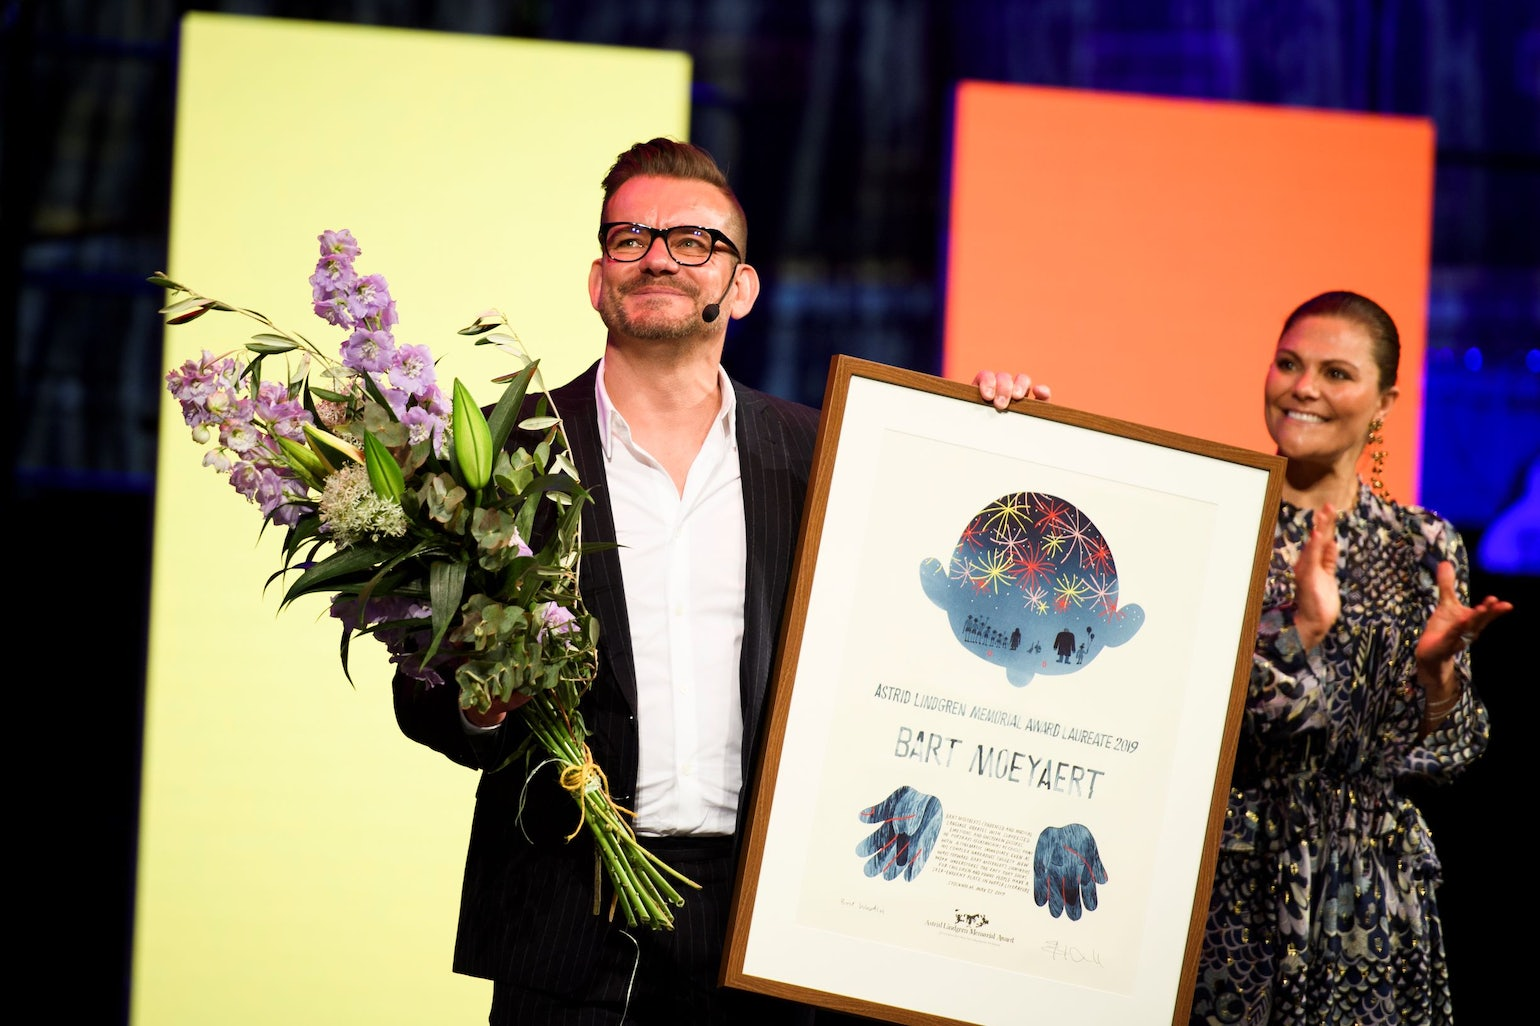 Picture of Bart Moeyaert with crown princess Victoria at the award show